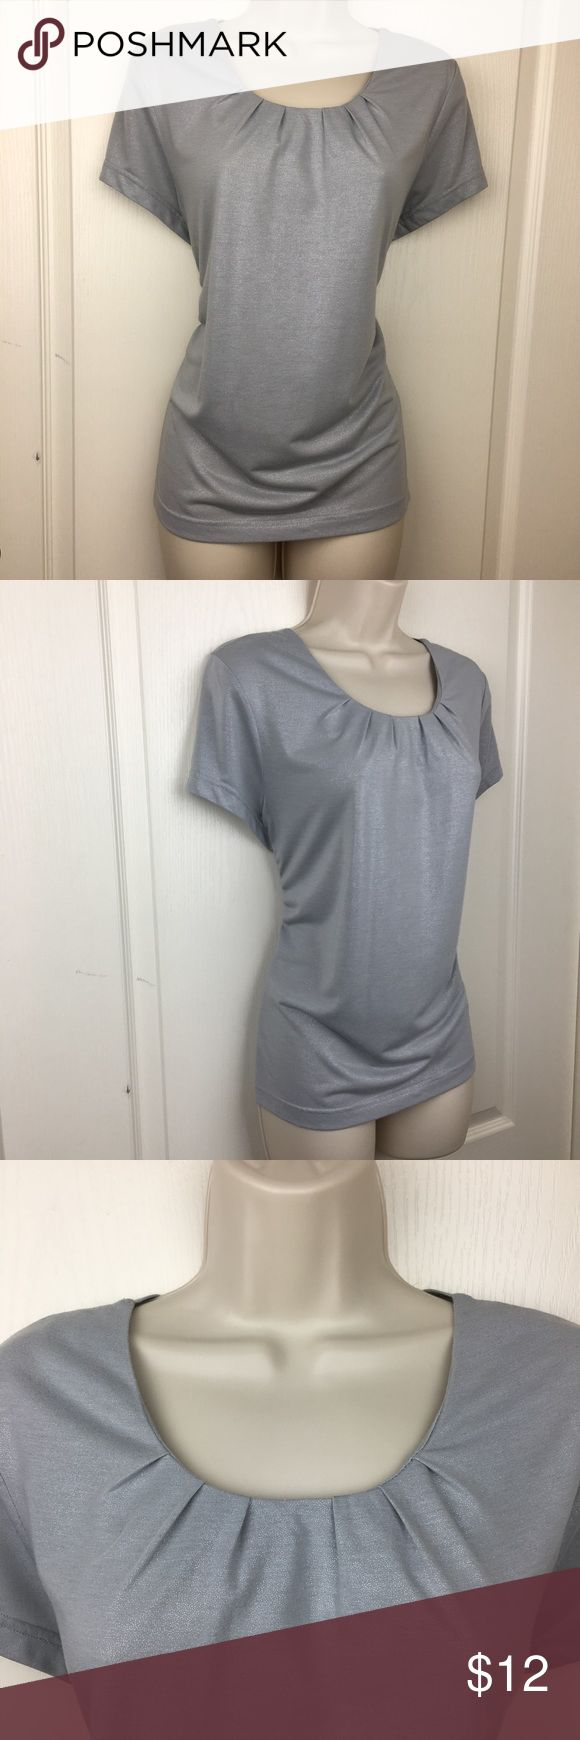 """Sag Harbor Blouse Gently used, no flaws. Measurements are: Length: 21.5"""" Bust: 37"""" All measurements are taken with the article of clothing lying flat and relaxed. Sag Harbor Tops Blouses"""